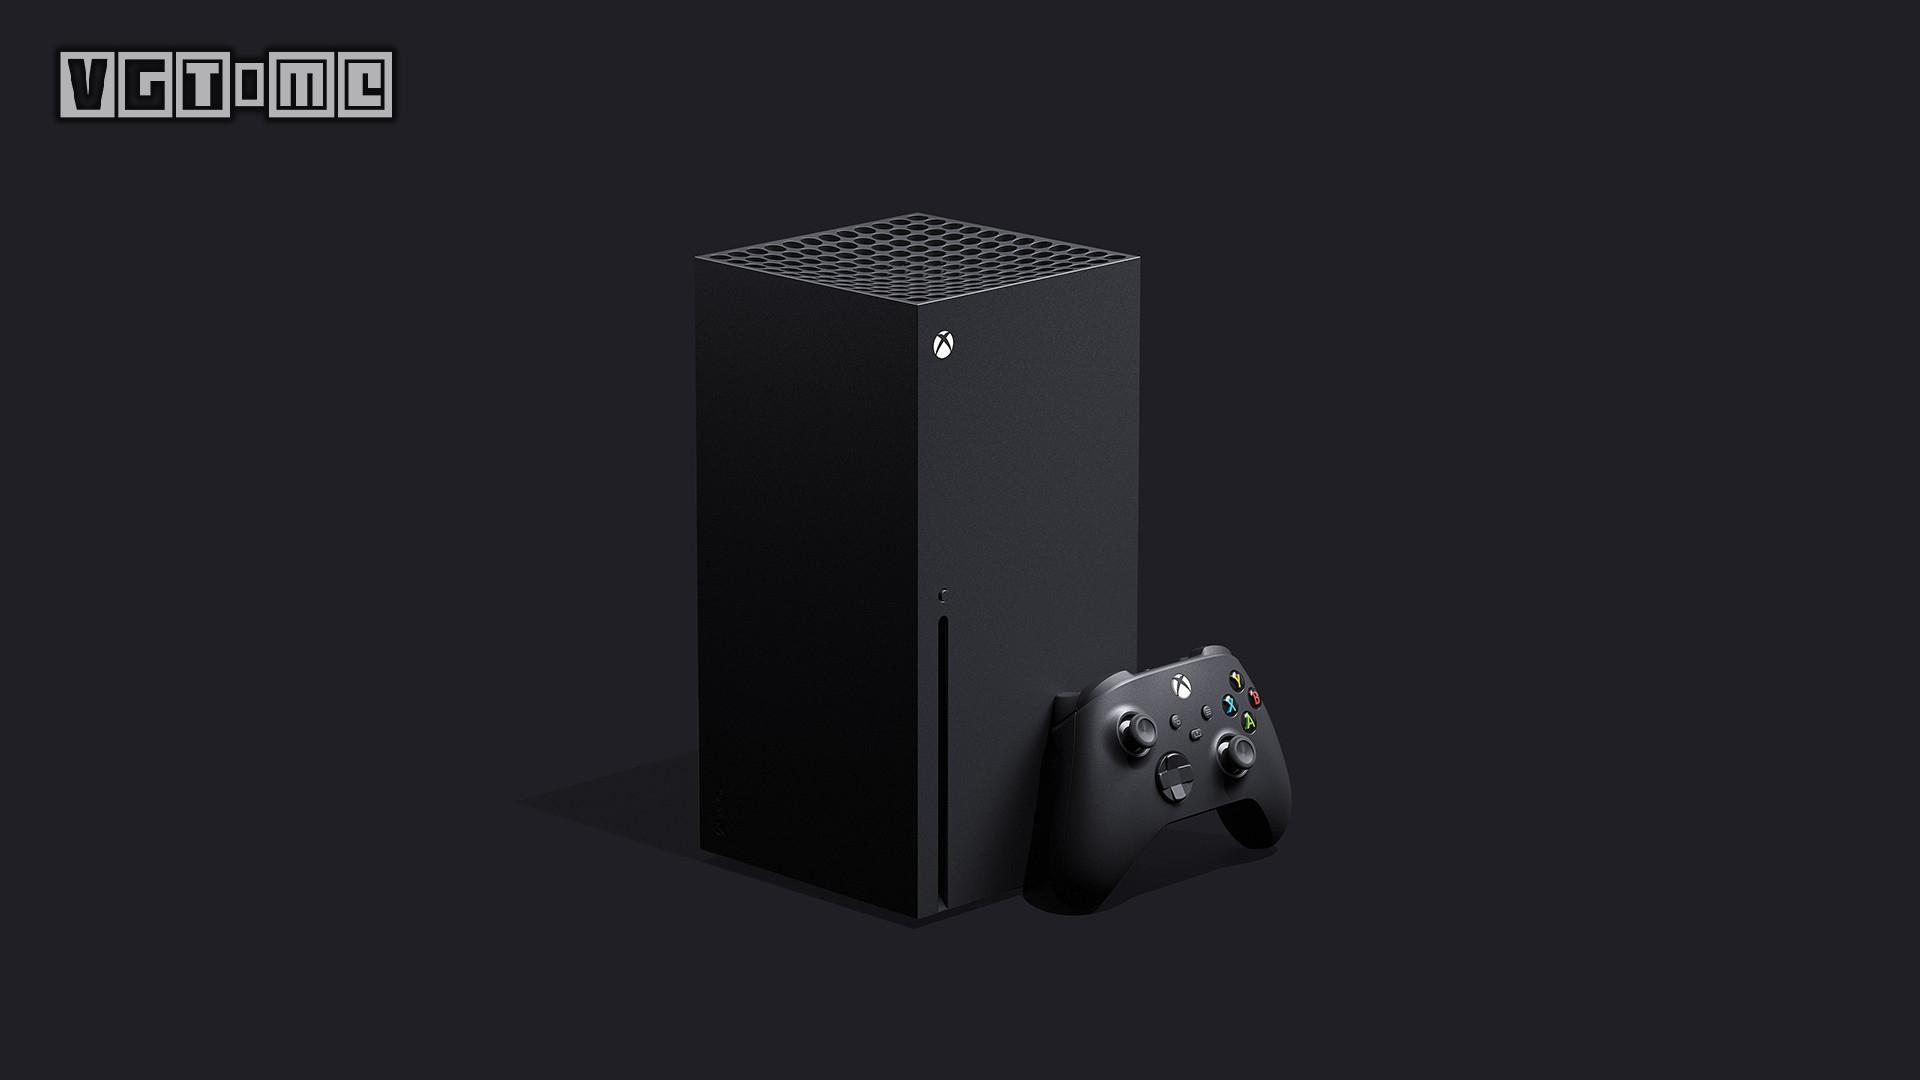 Microsoft confirms Xbox series X has special audio hardware acceleration function